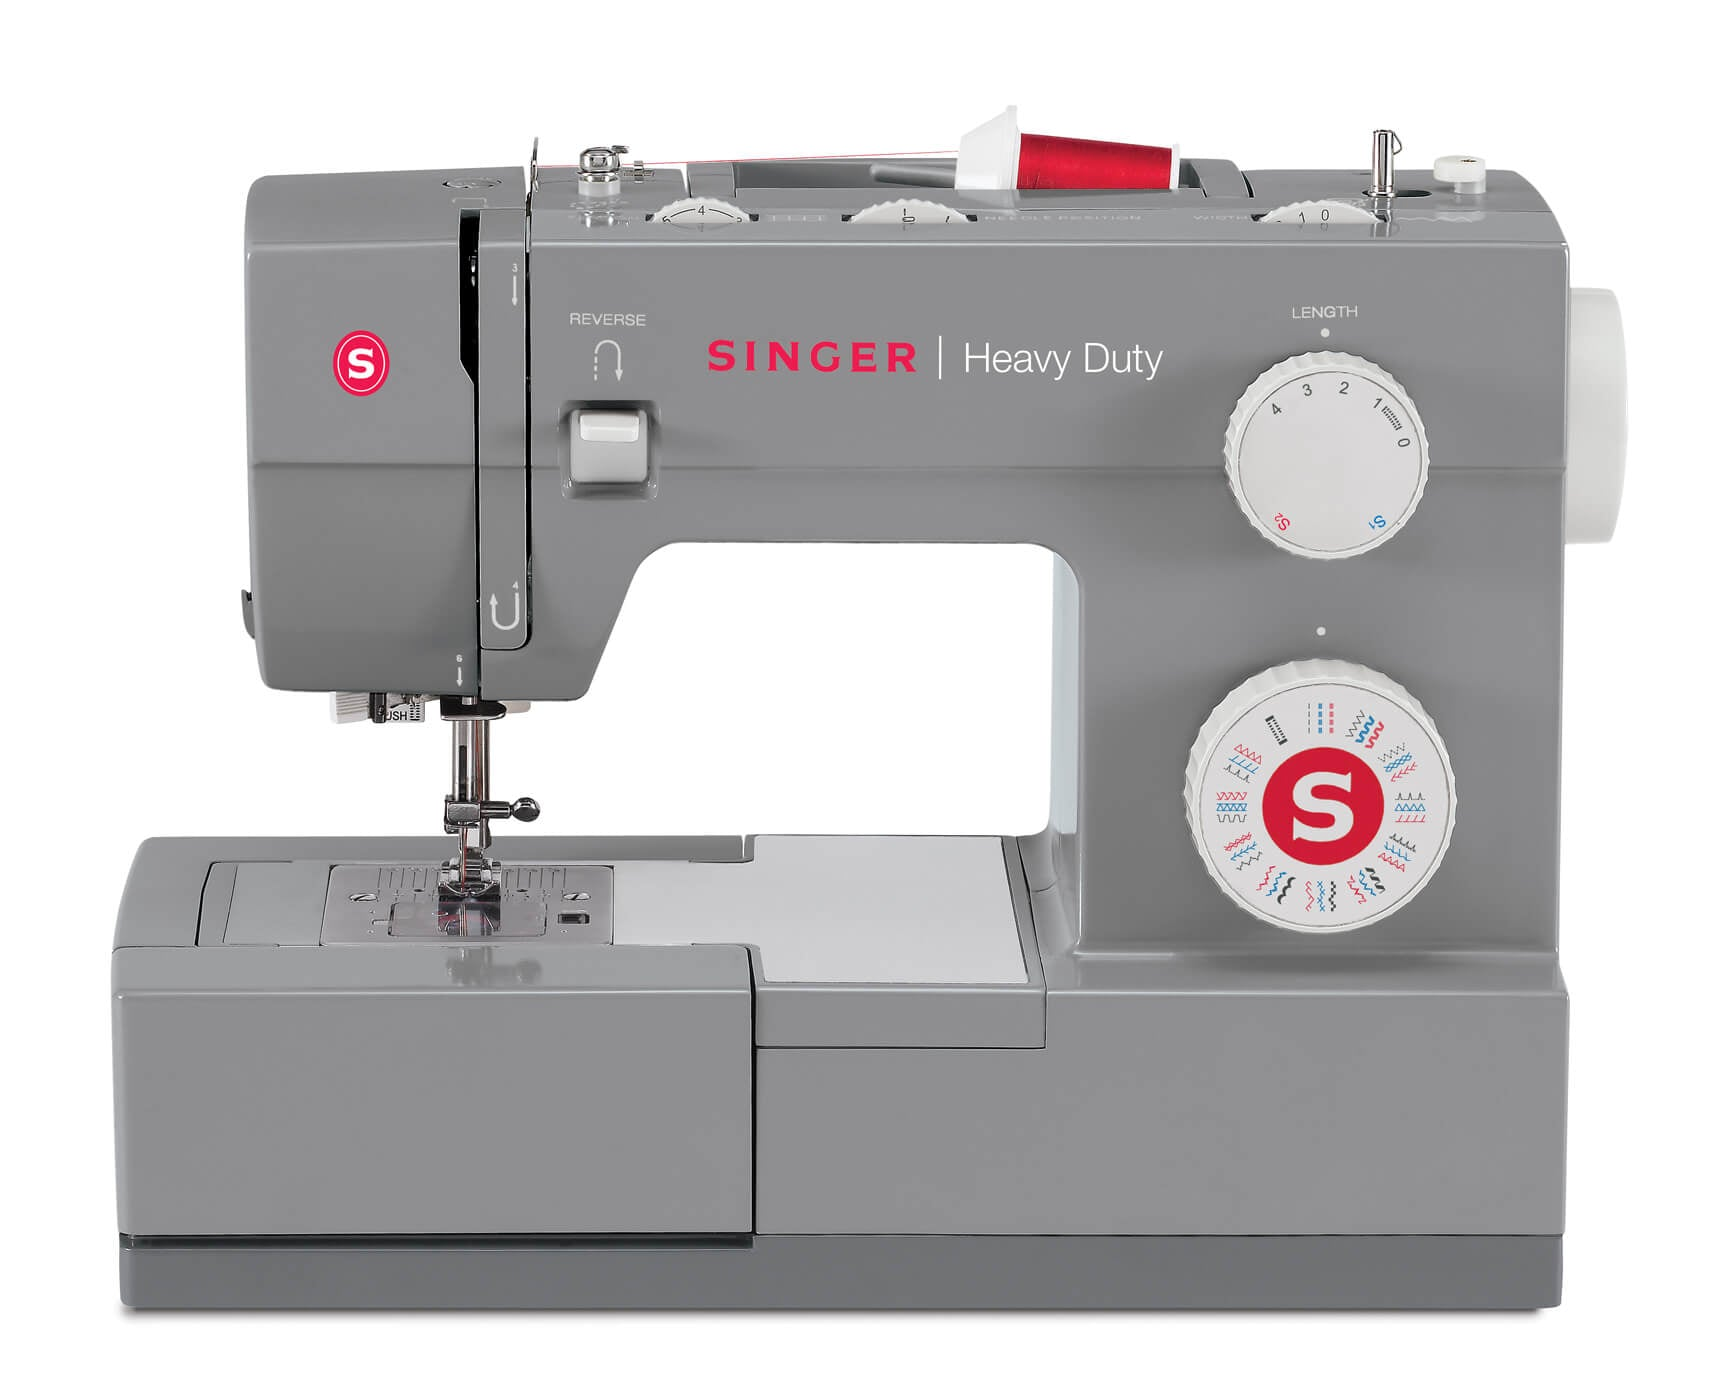 Singer Heavy Duty 4432  - 32 stitch patterns, overlocking, stretch stitches, 60% stronger and over 30% faster - Preorder for delivery later in April